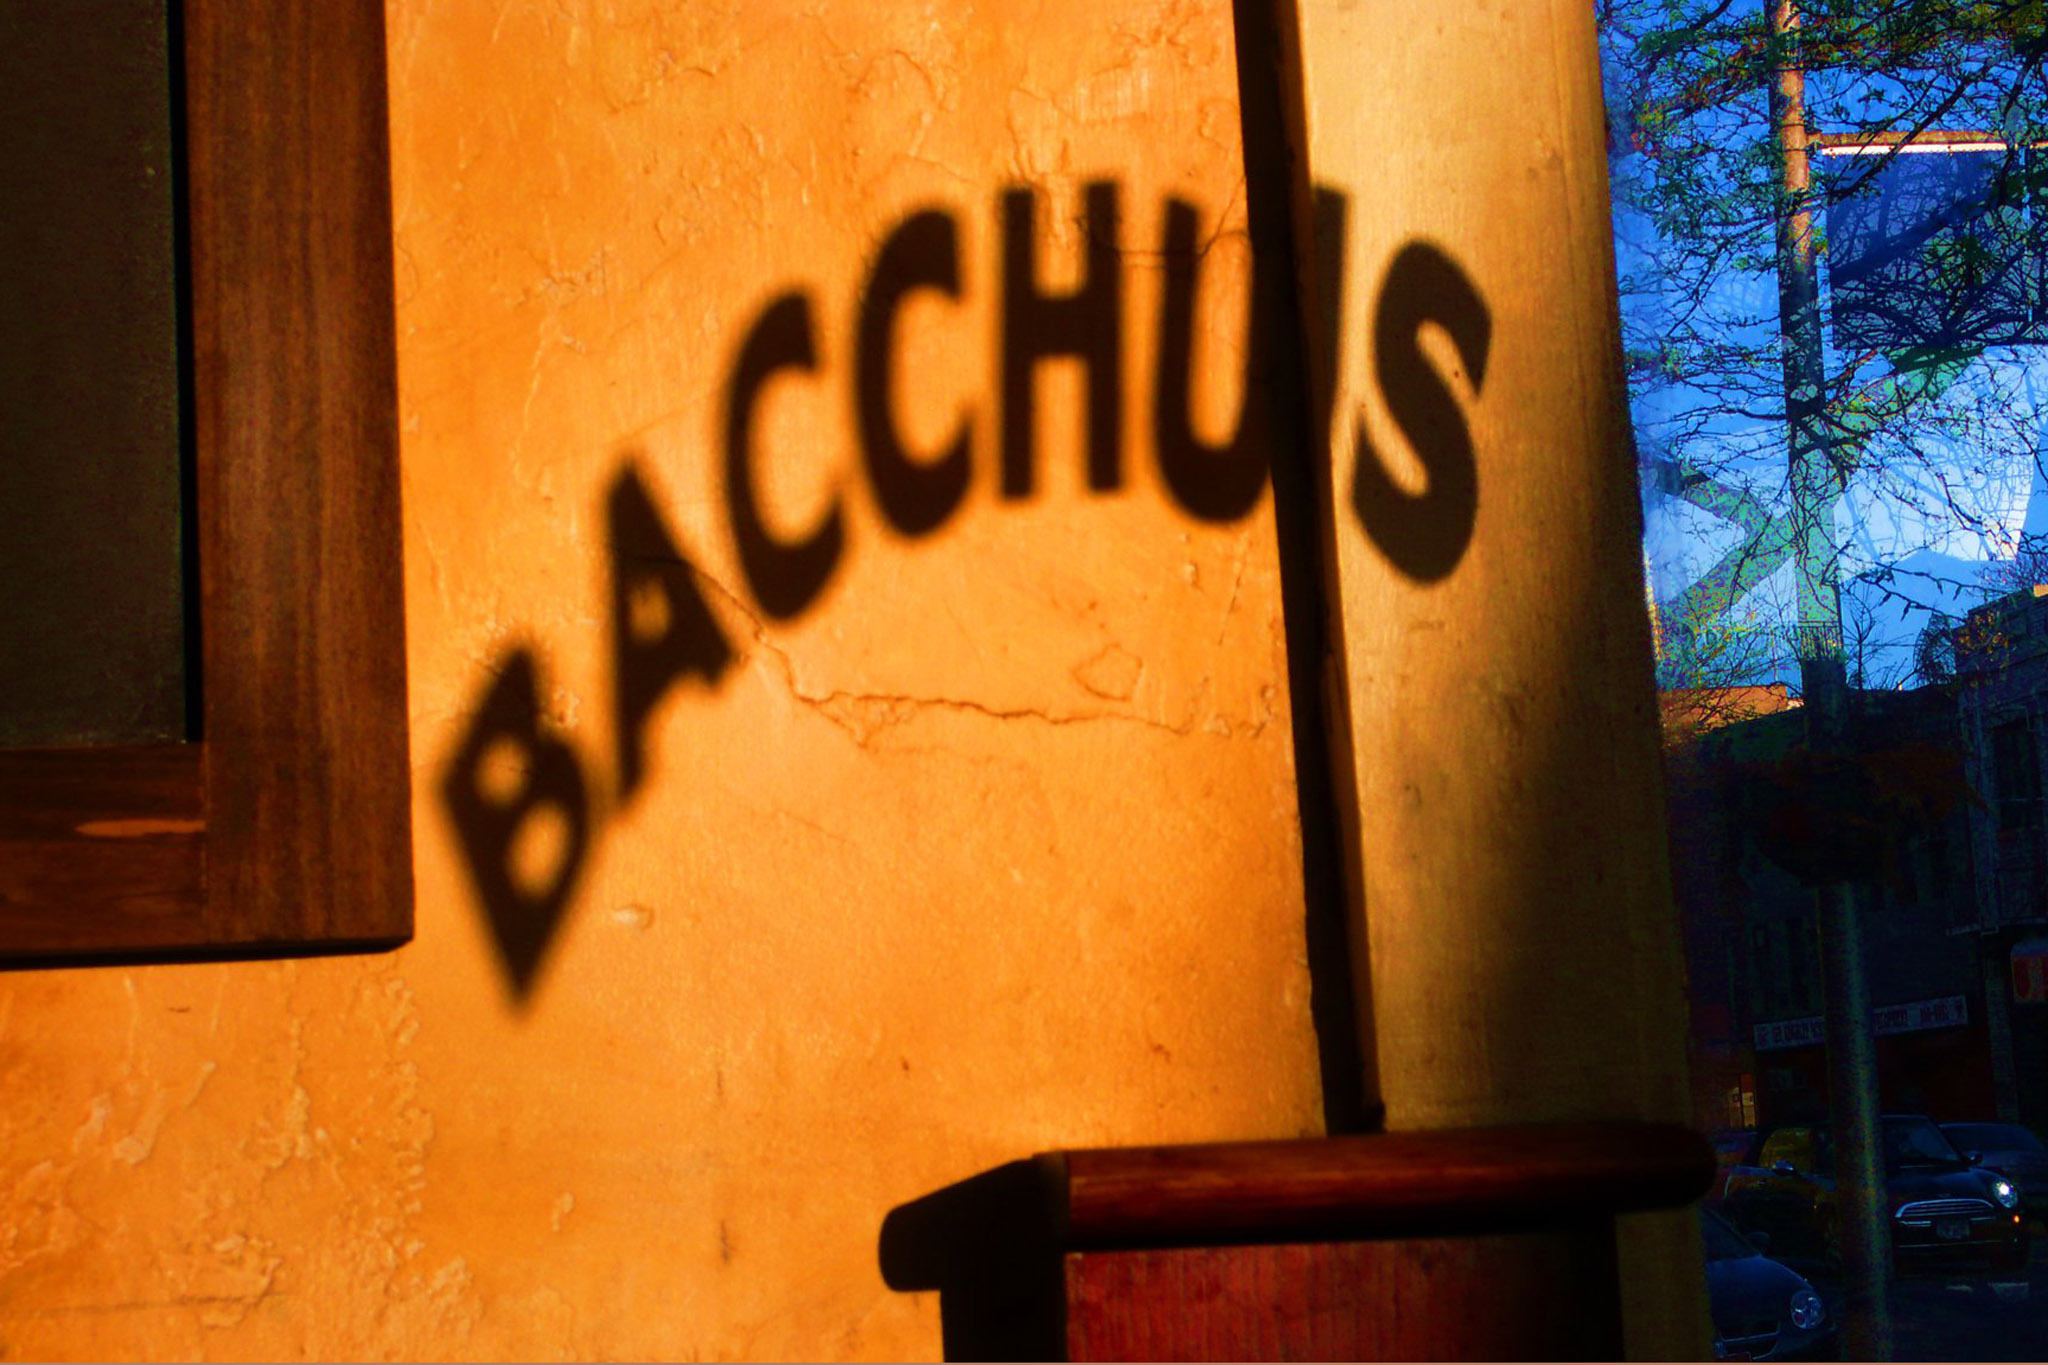 Bacchus Bistro is open on Christmas and offers a fancy prixe fixe special menu.